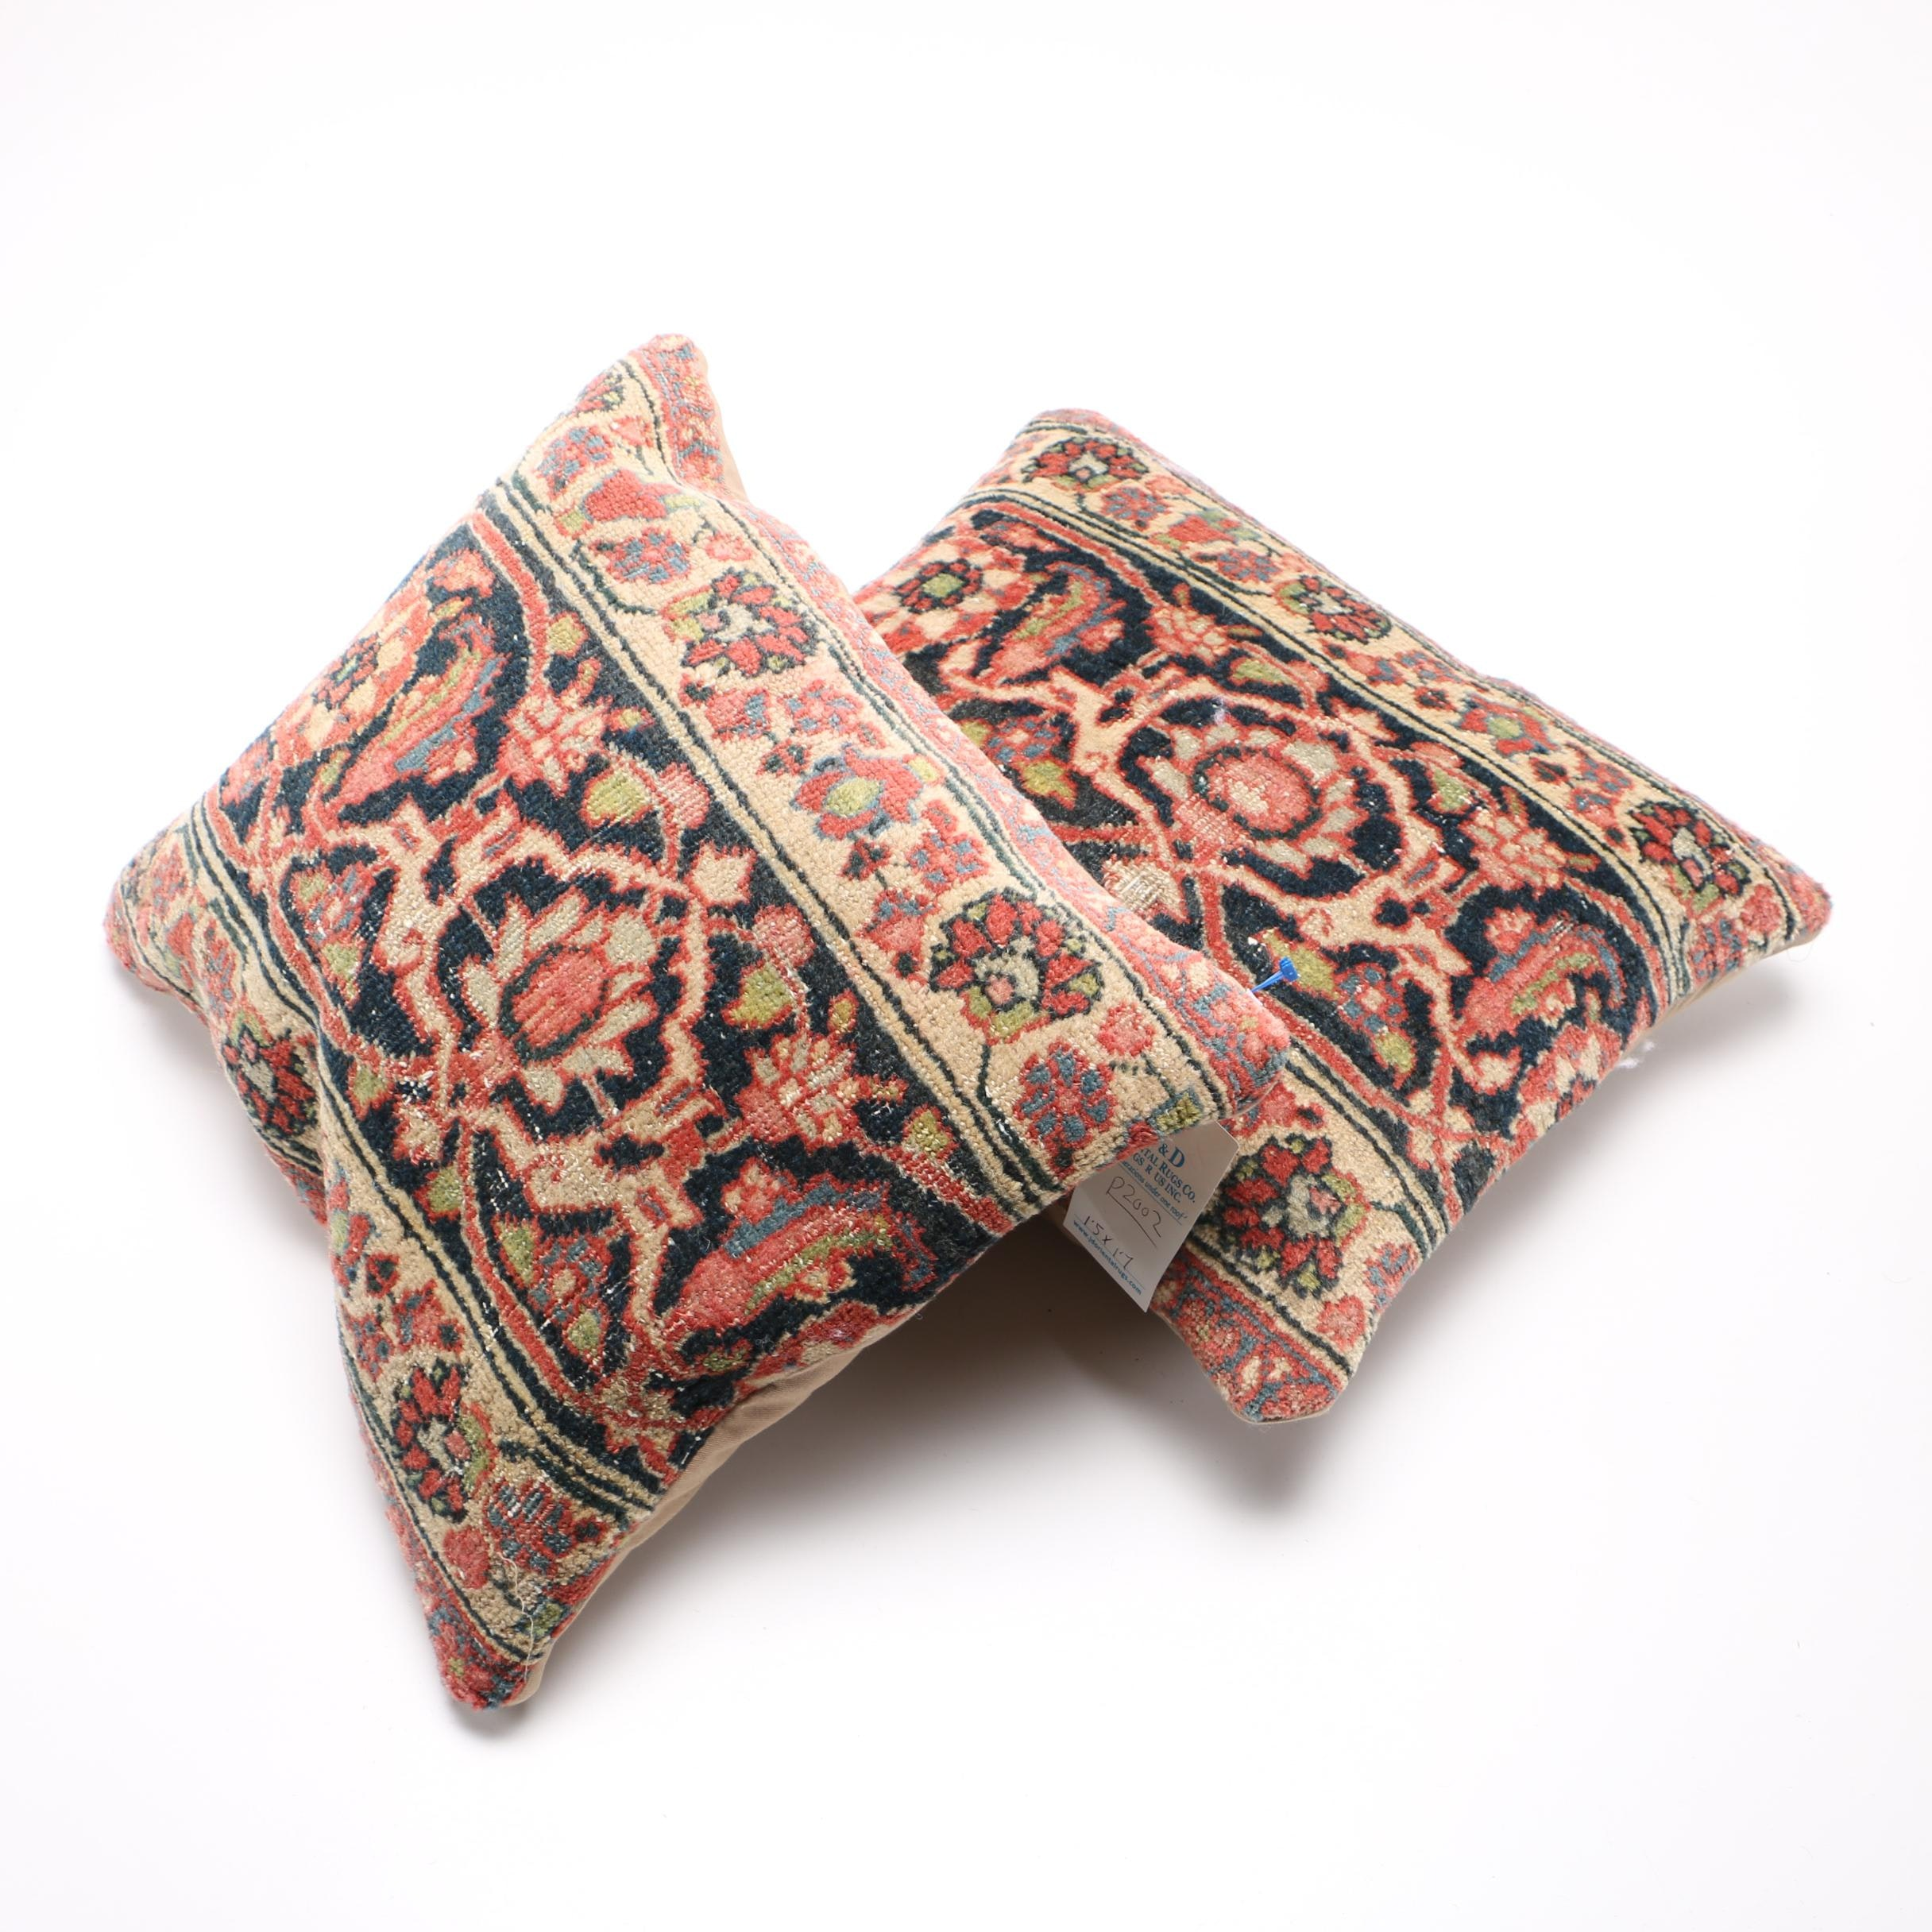 Antique Persian Tabriz Rug Pillows